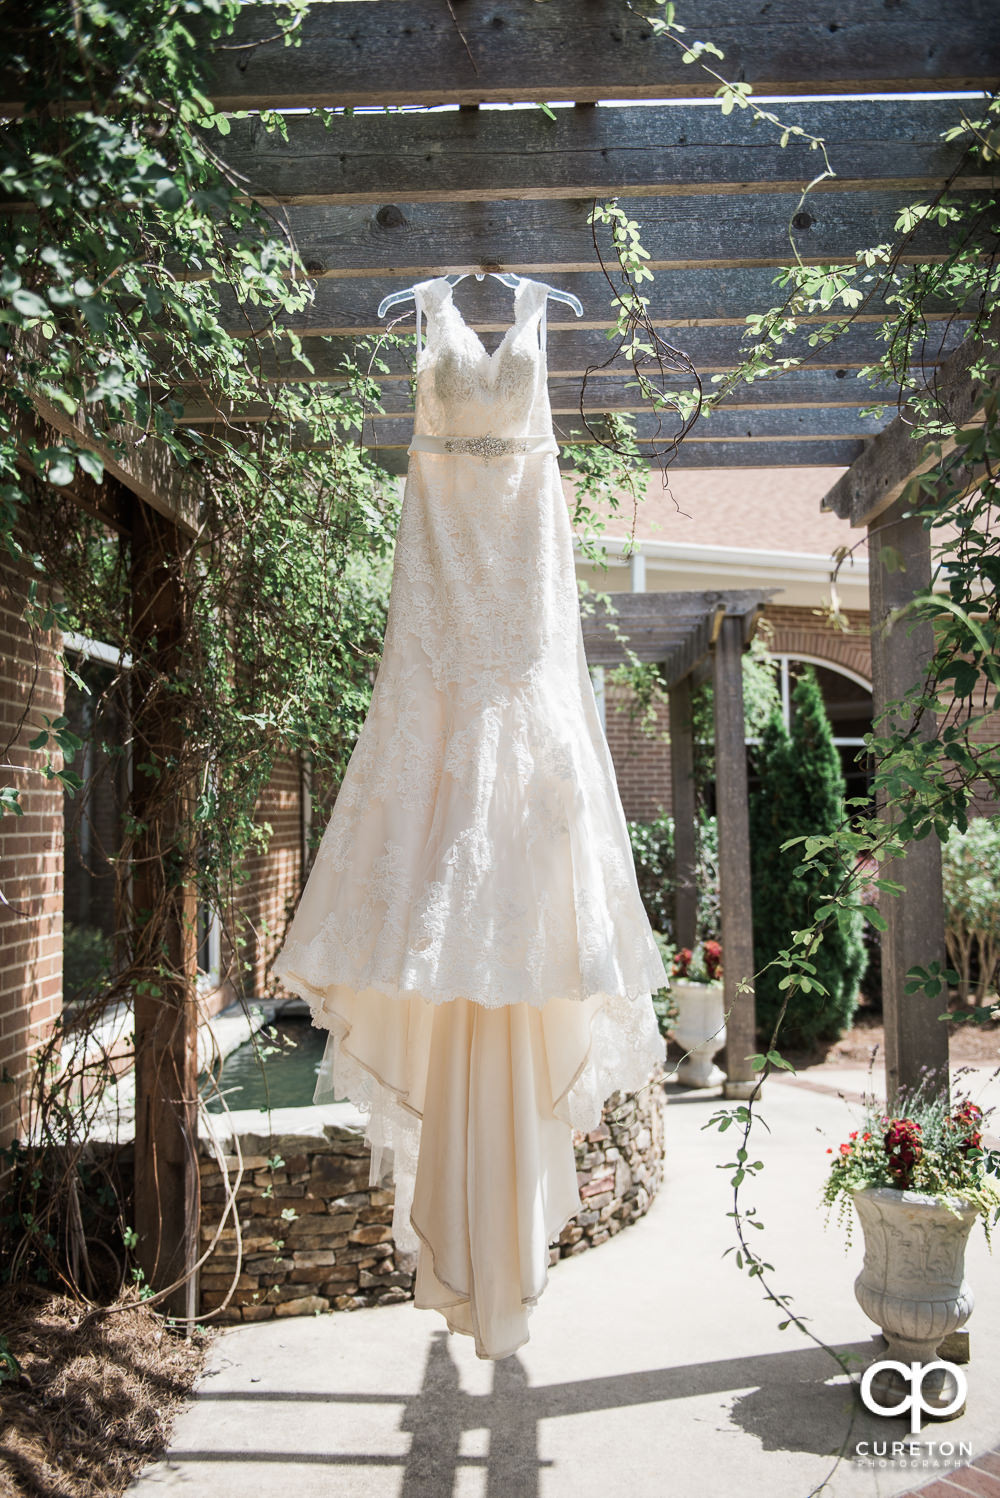 Bride's dress hanging at the church.